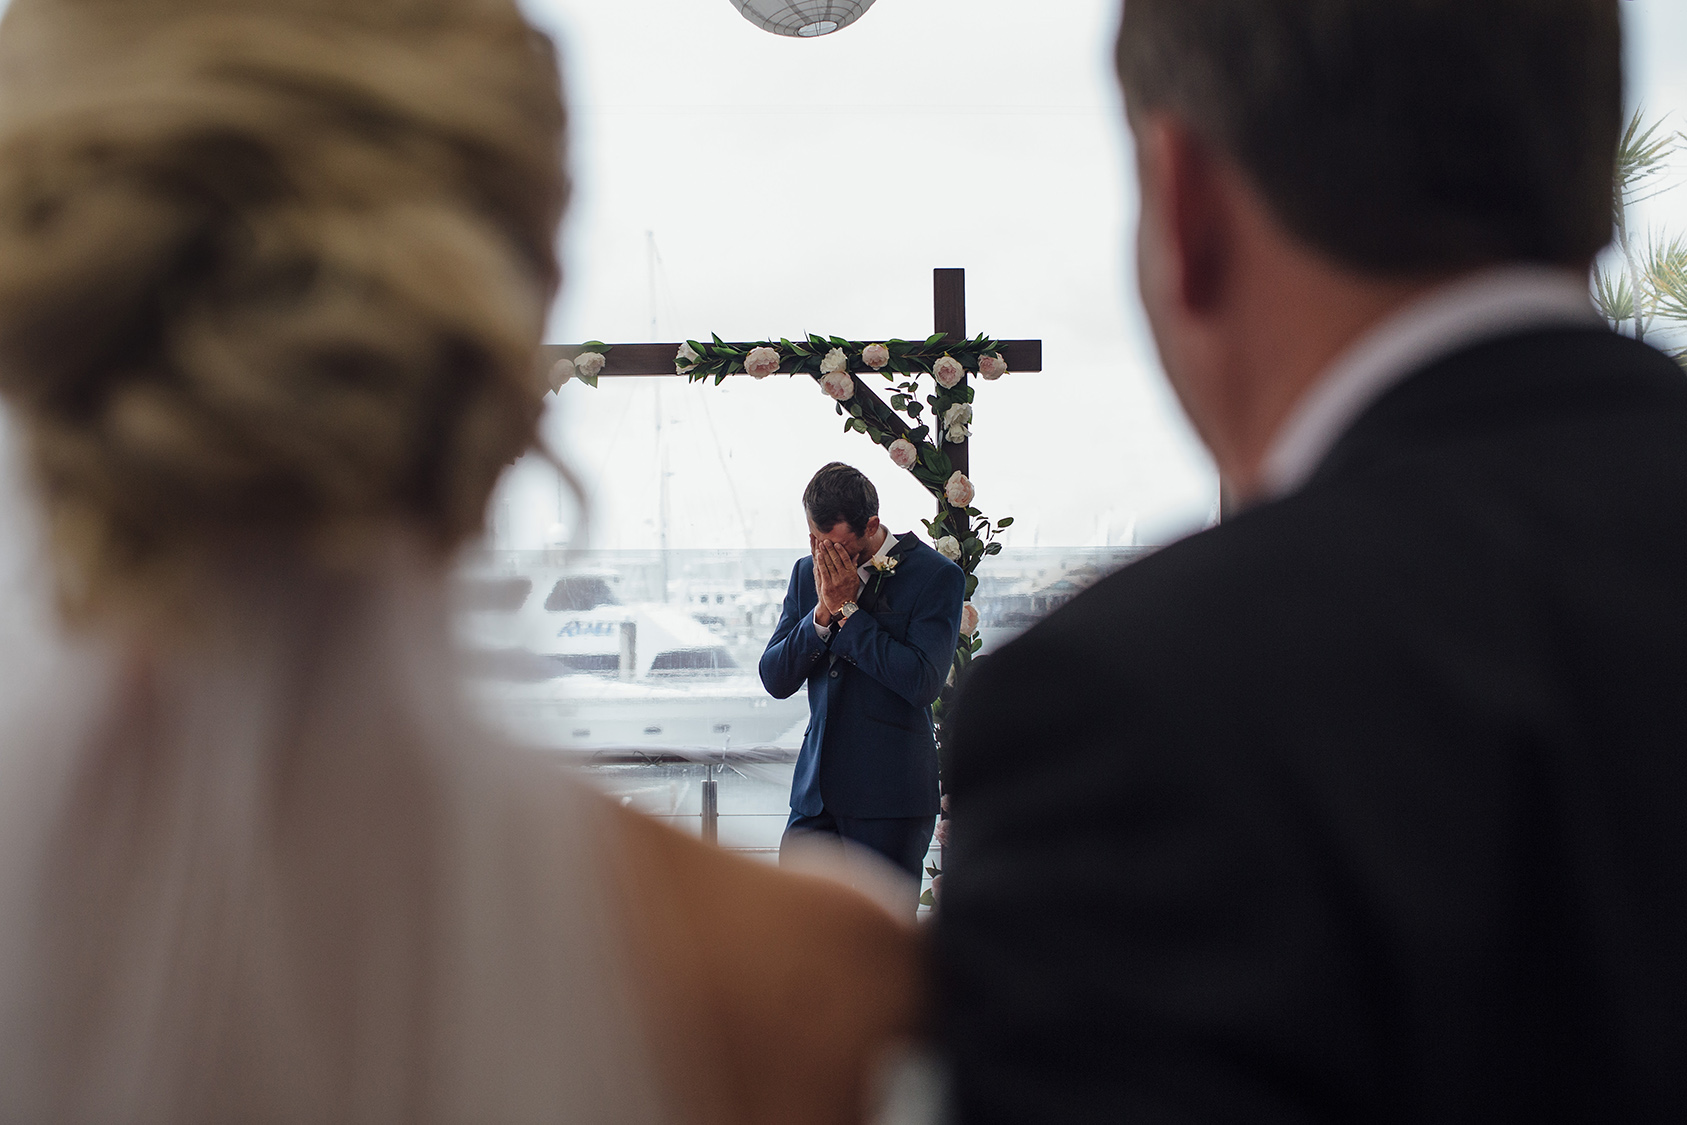 A good wedding photographer anticipates moments